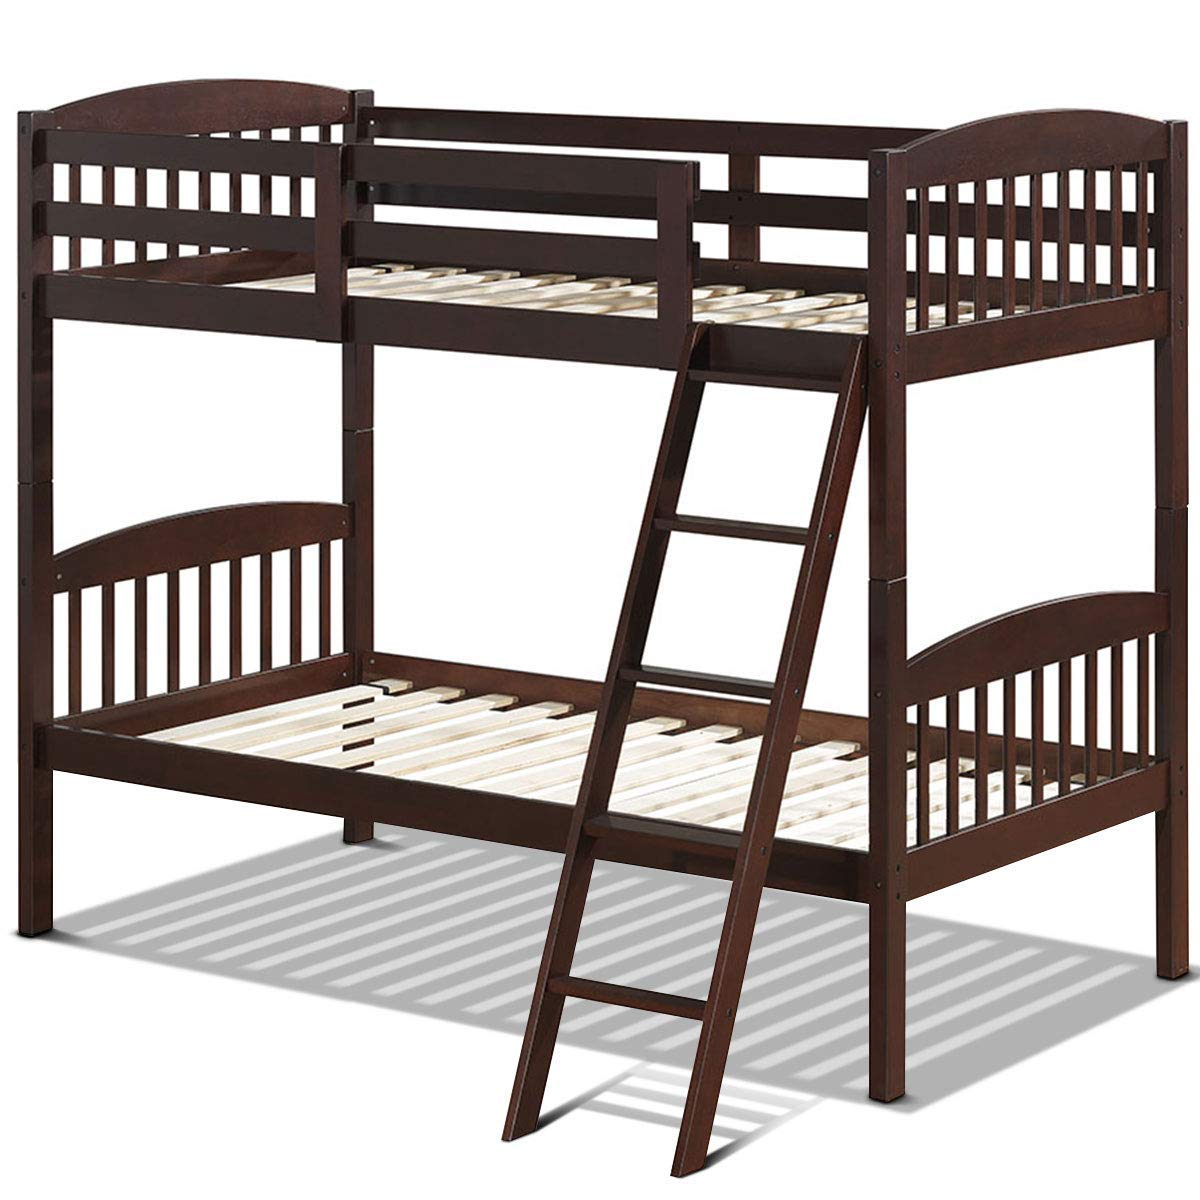 Costzon Twin Bunk Beds, Convertible Into Two Individual Beds, Solid Wood Twin Bunk Beds for Kids with Ladder and Safety Rail, Espresso